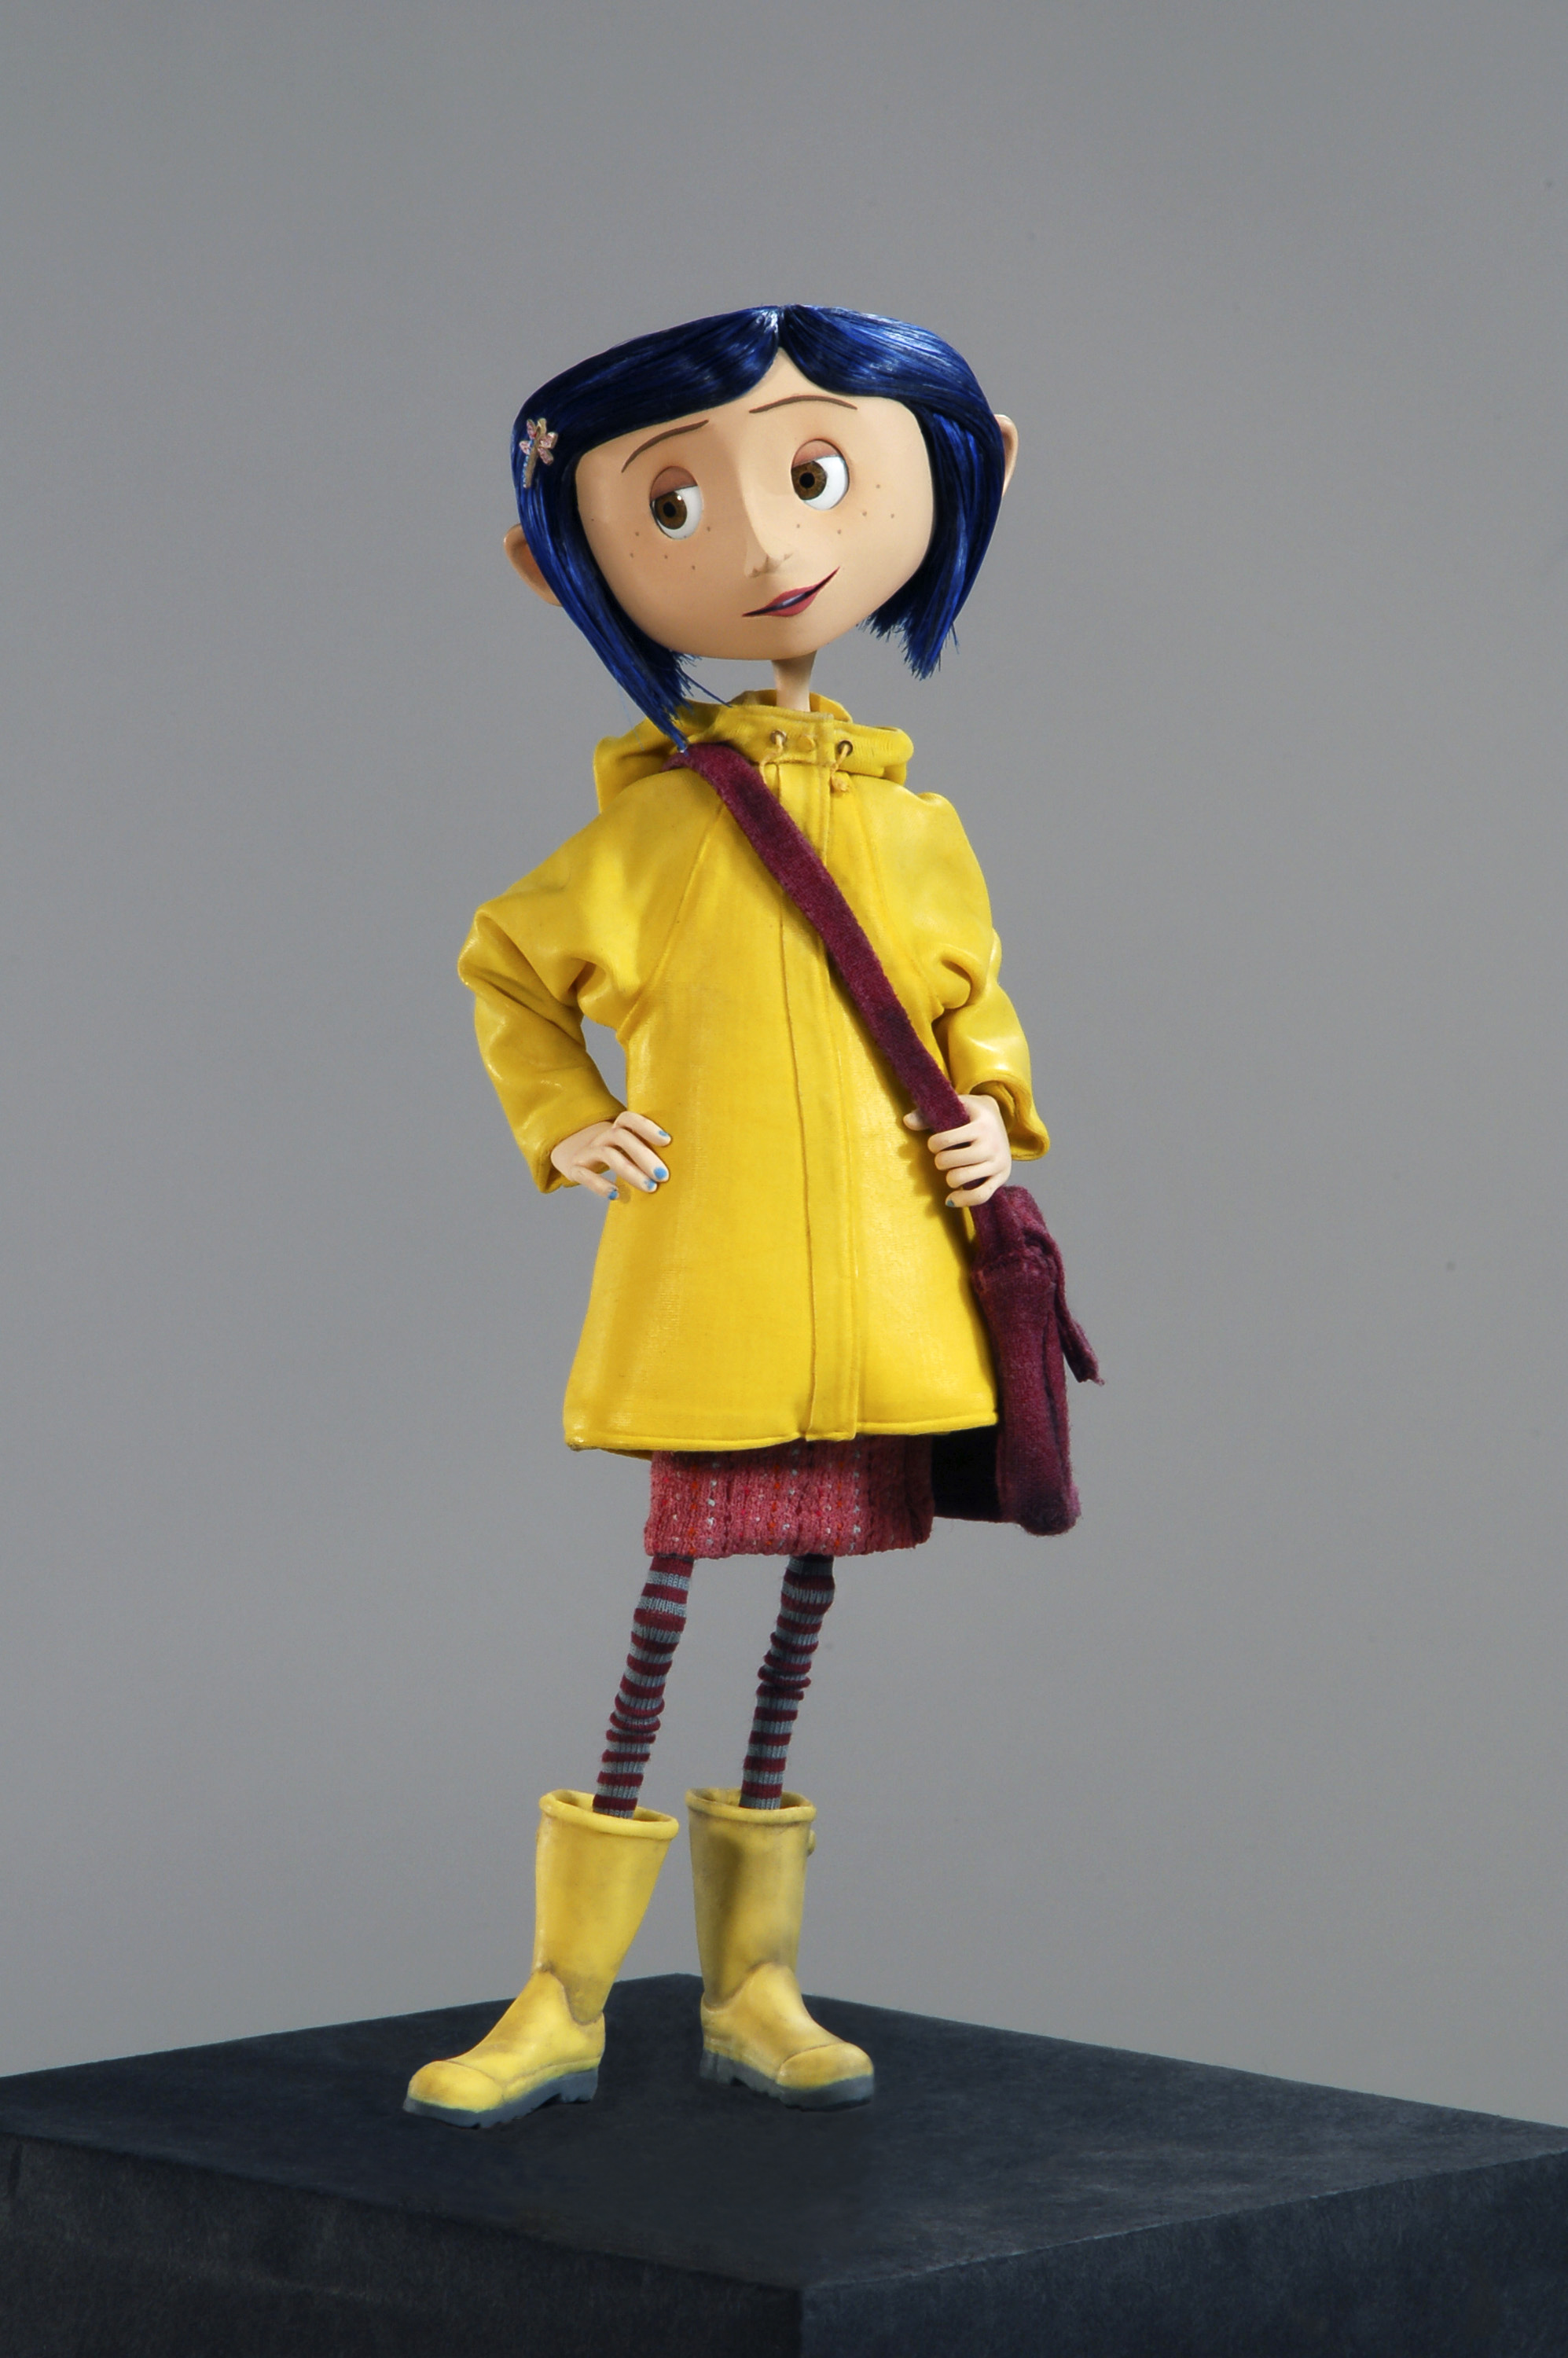 Coraline wallpapers, Movie, HQ Coraline pictures | 4K